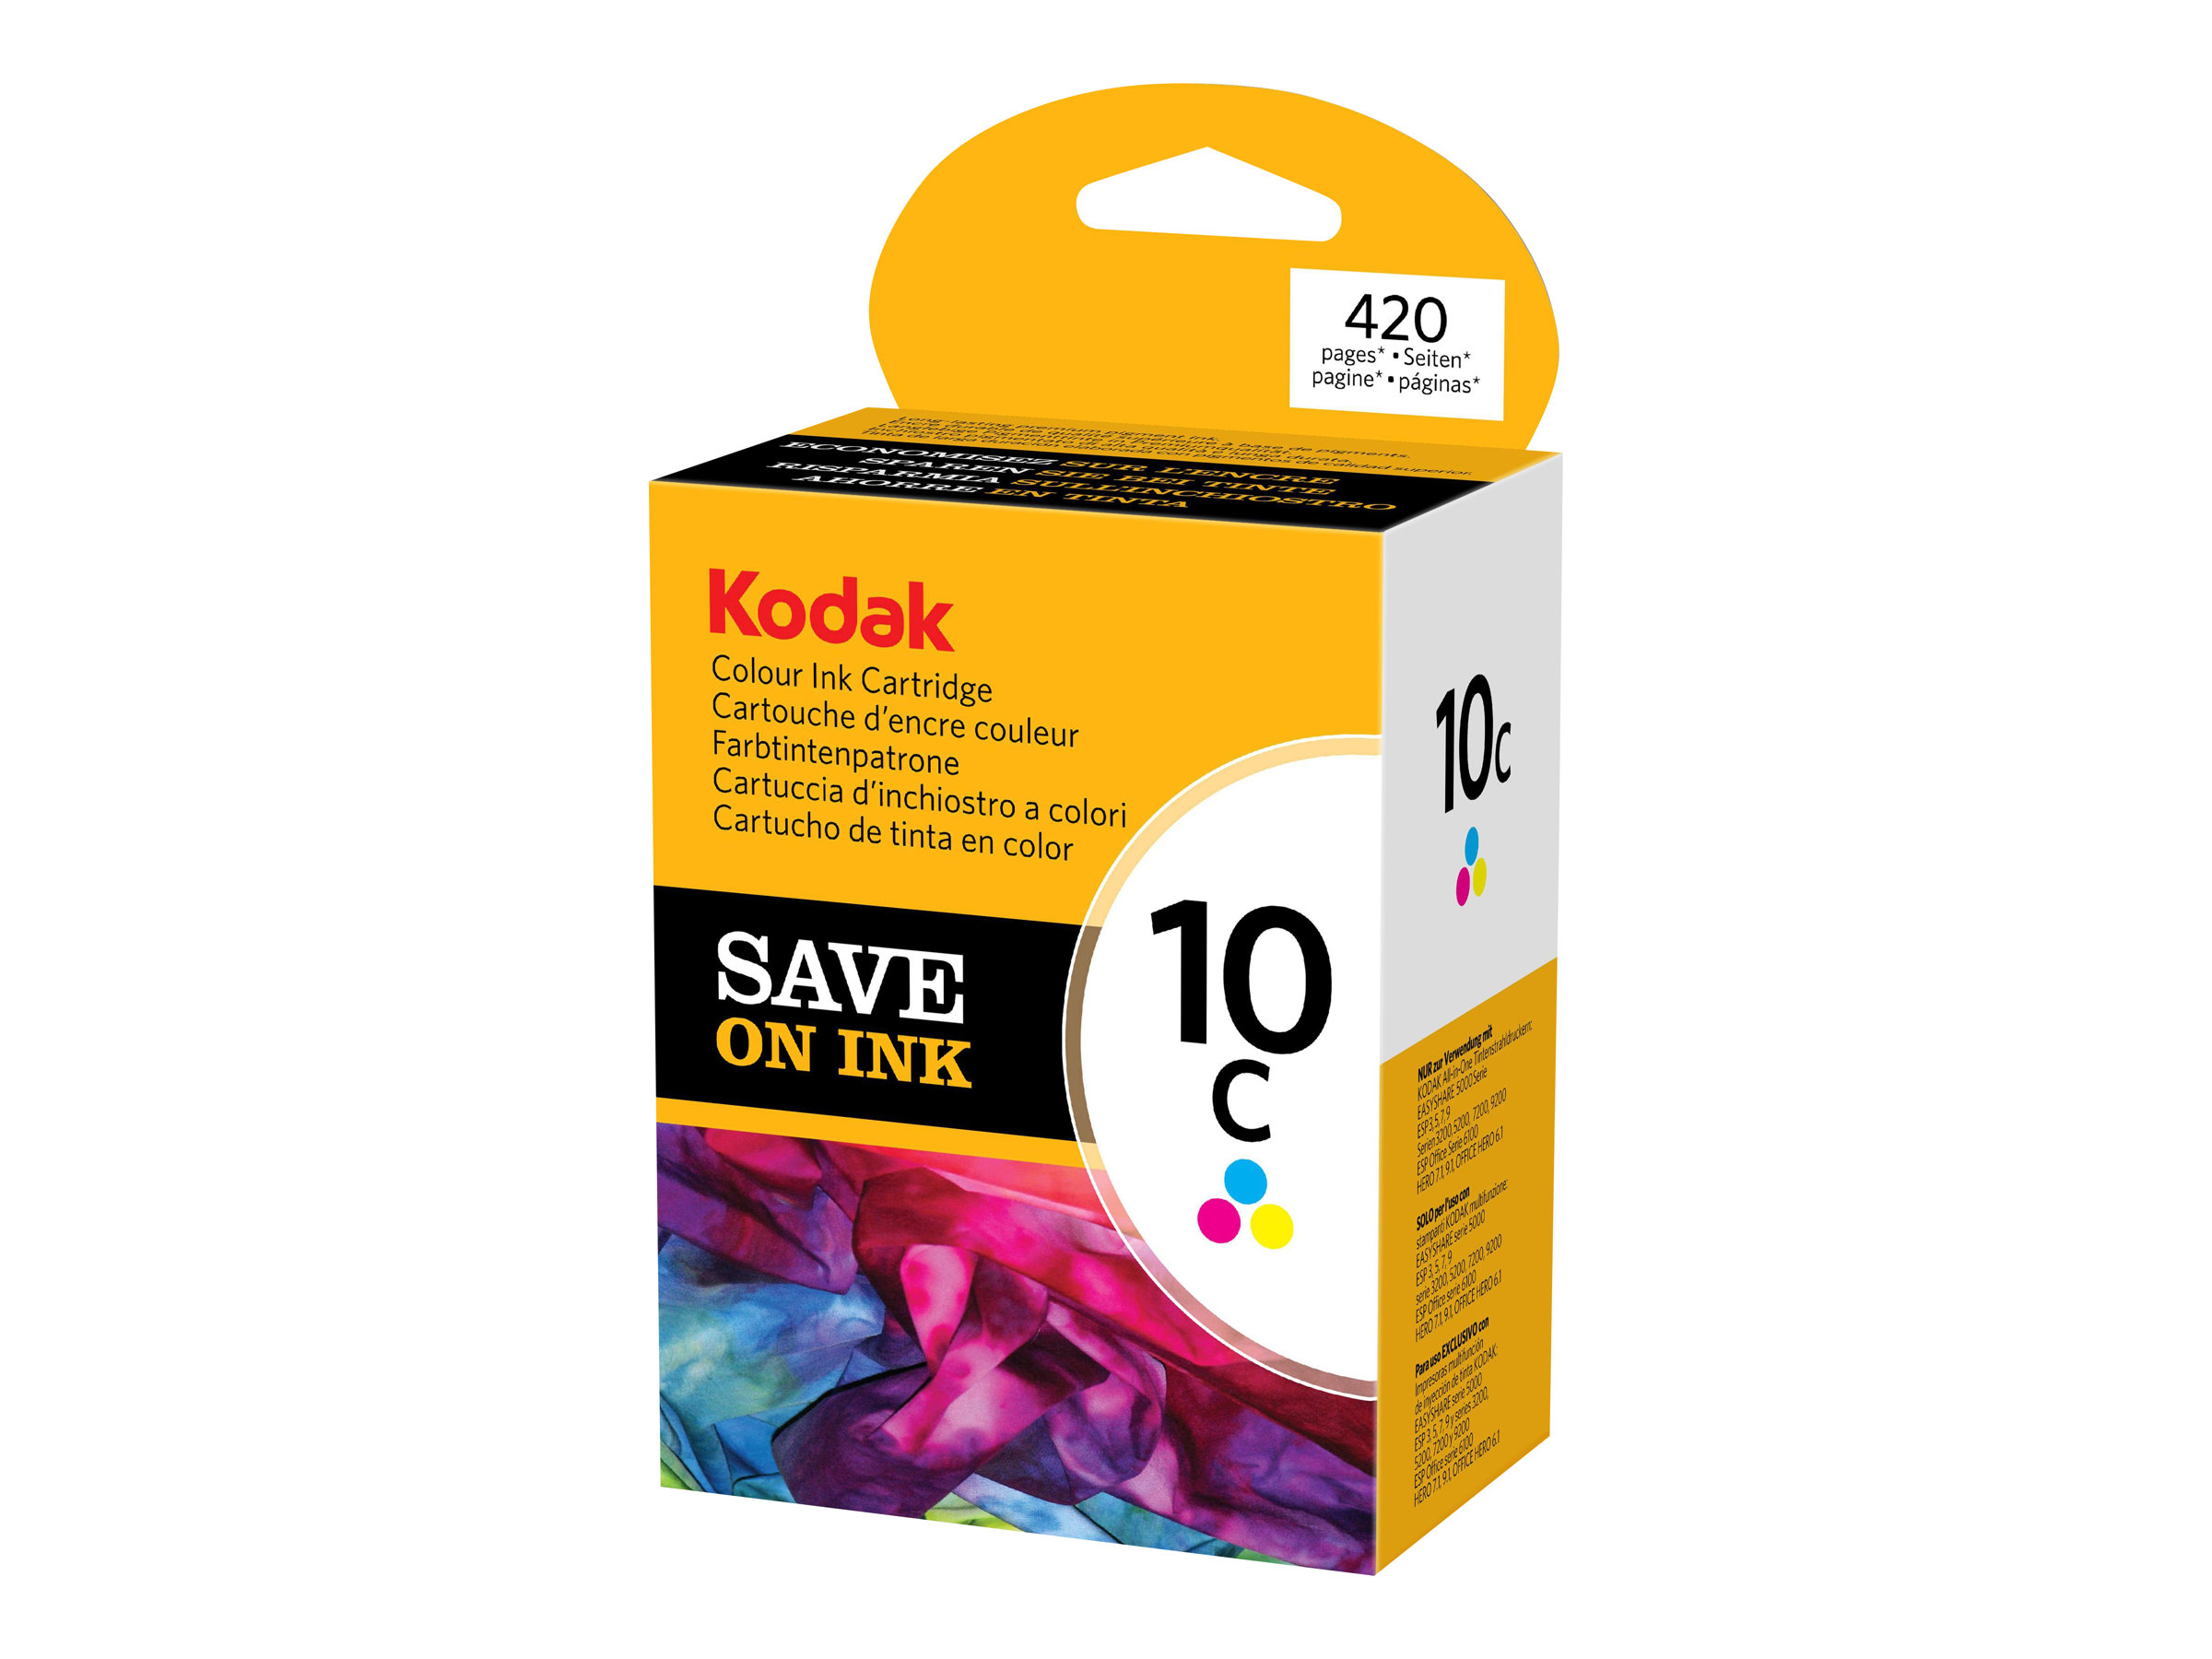 Kodak Color Ink Cartridge - 1 - Original - Tintenpatrone - für ESP 3250, 5, 5250, 7, 7250, 9, Office 6150; HERO 6.1, 7.1, 9.1; OFFICE HERO 6.1